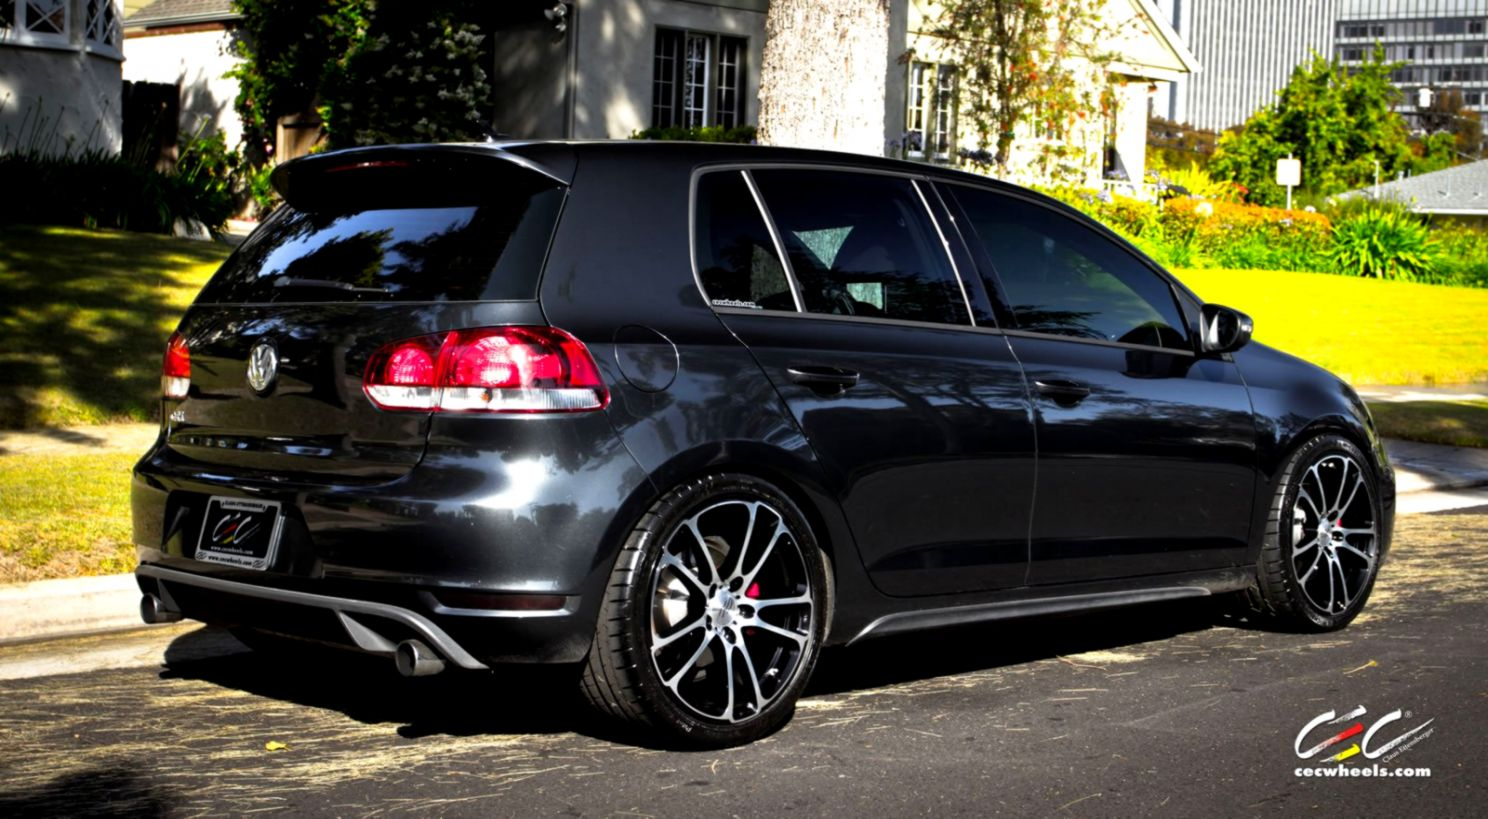 Volkswagen Golf Gti Wheel Tuning Hd Wallpaper Wallpapers